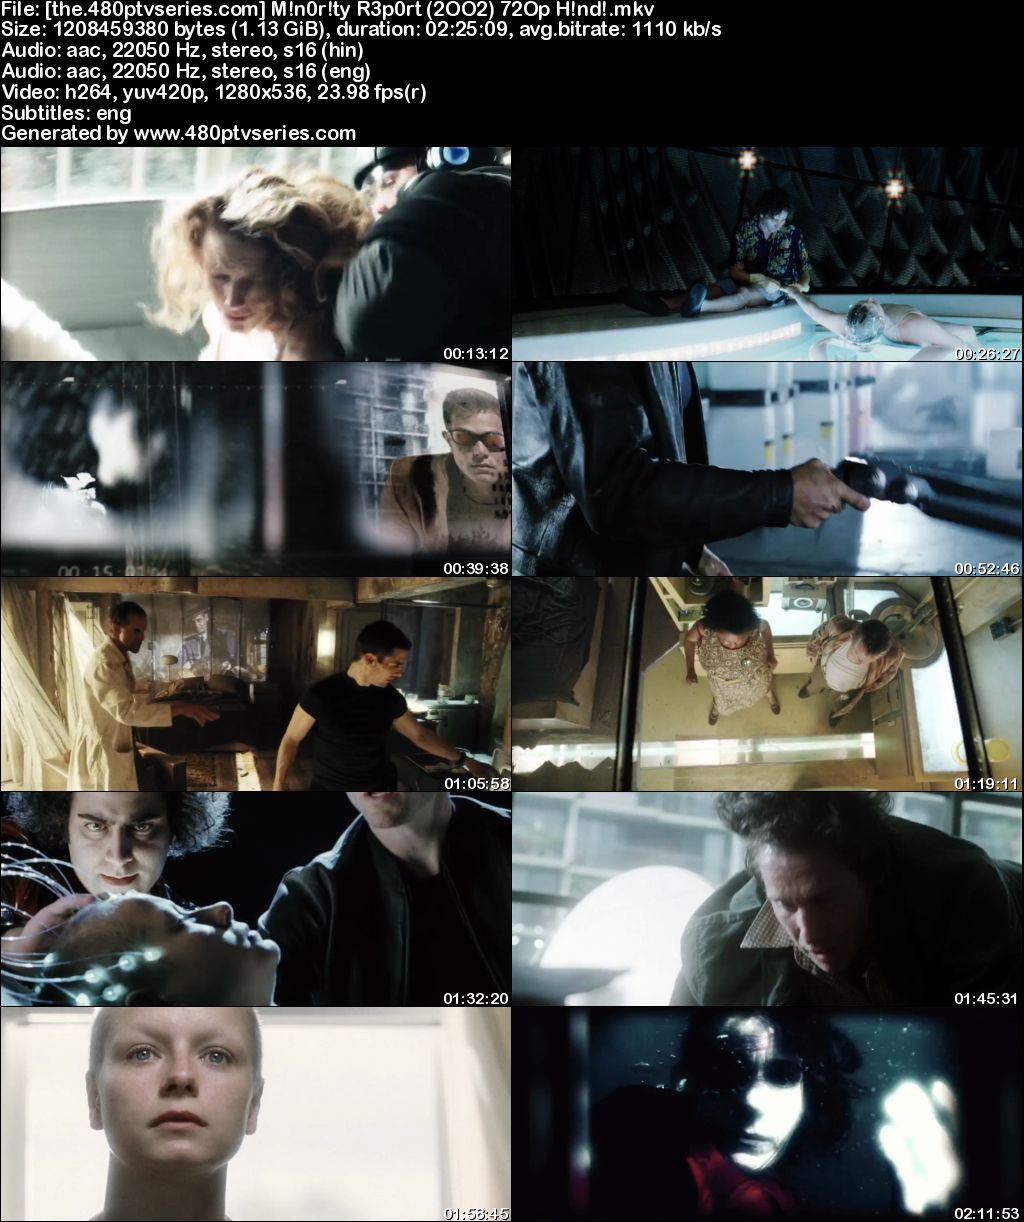 Watch Online Free Minority Report (2002) Full Hindi Dual Audio Movie Download 480p 720p Bluray